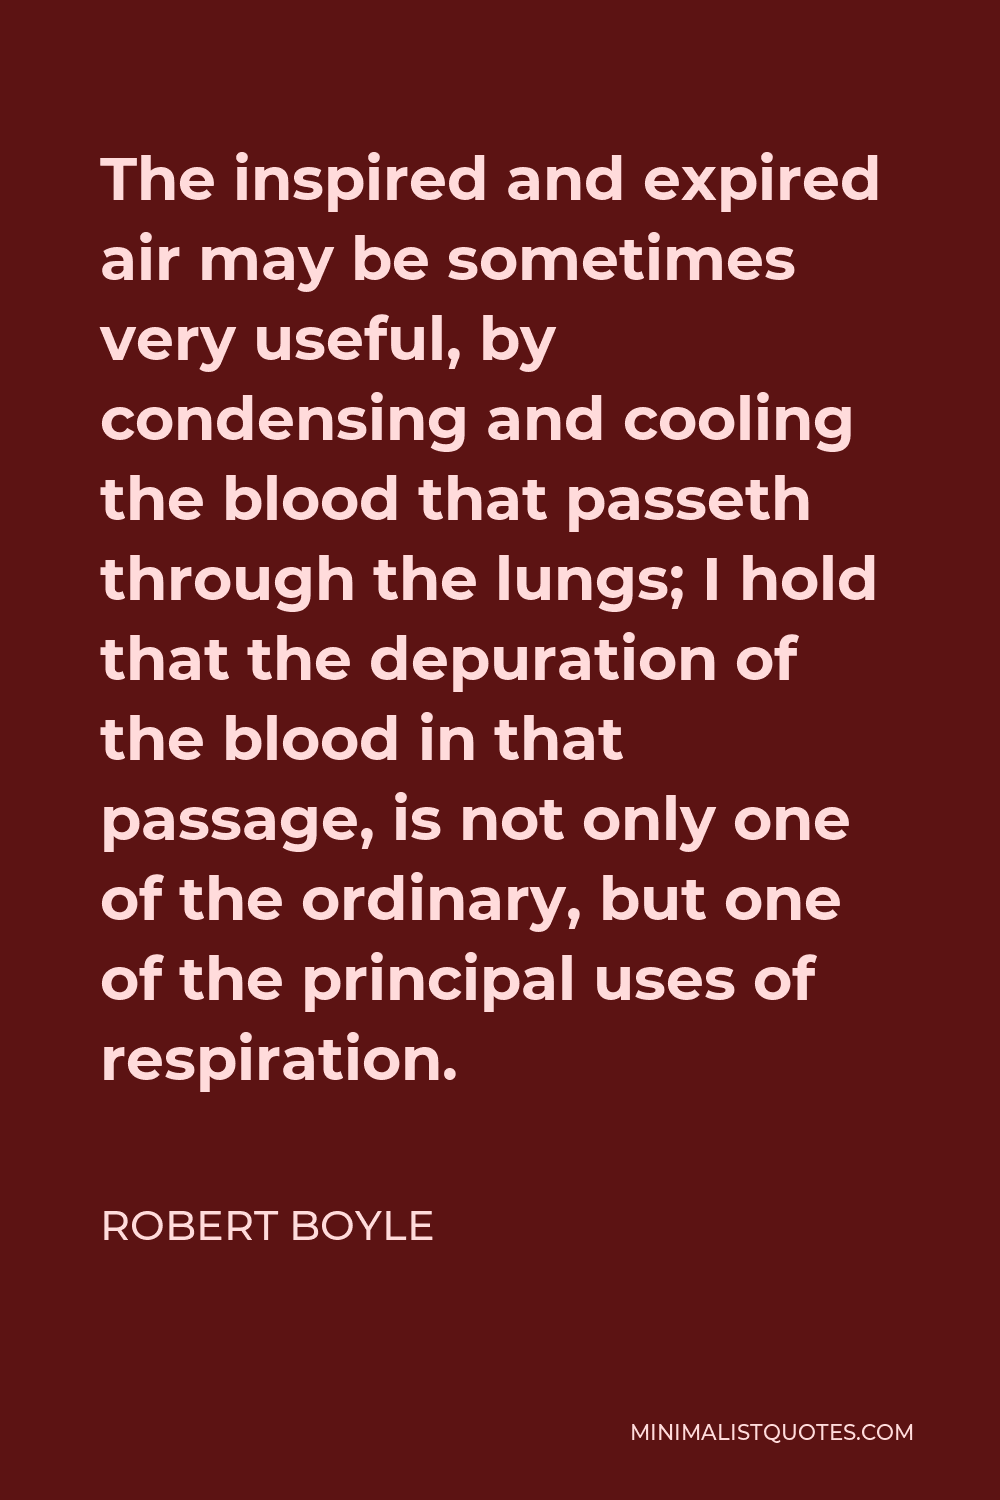 Robert Boyle Quote - The inspired and expired air may be sometimes very useful, by condensing and cooling the blood that passeth through the lungs; I hold that the depuration of the blood in that passage, is not only one of the ordinary, but one of the principal uses of respiration.